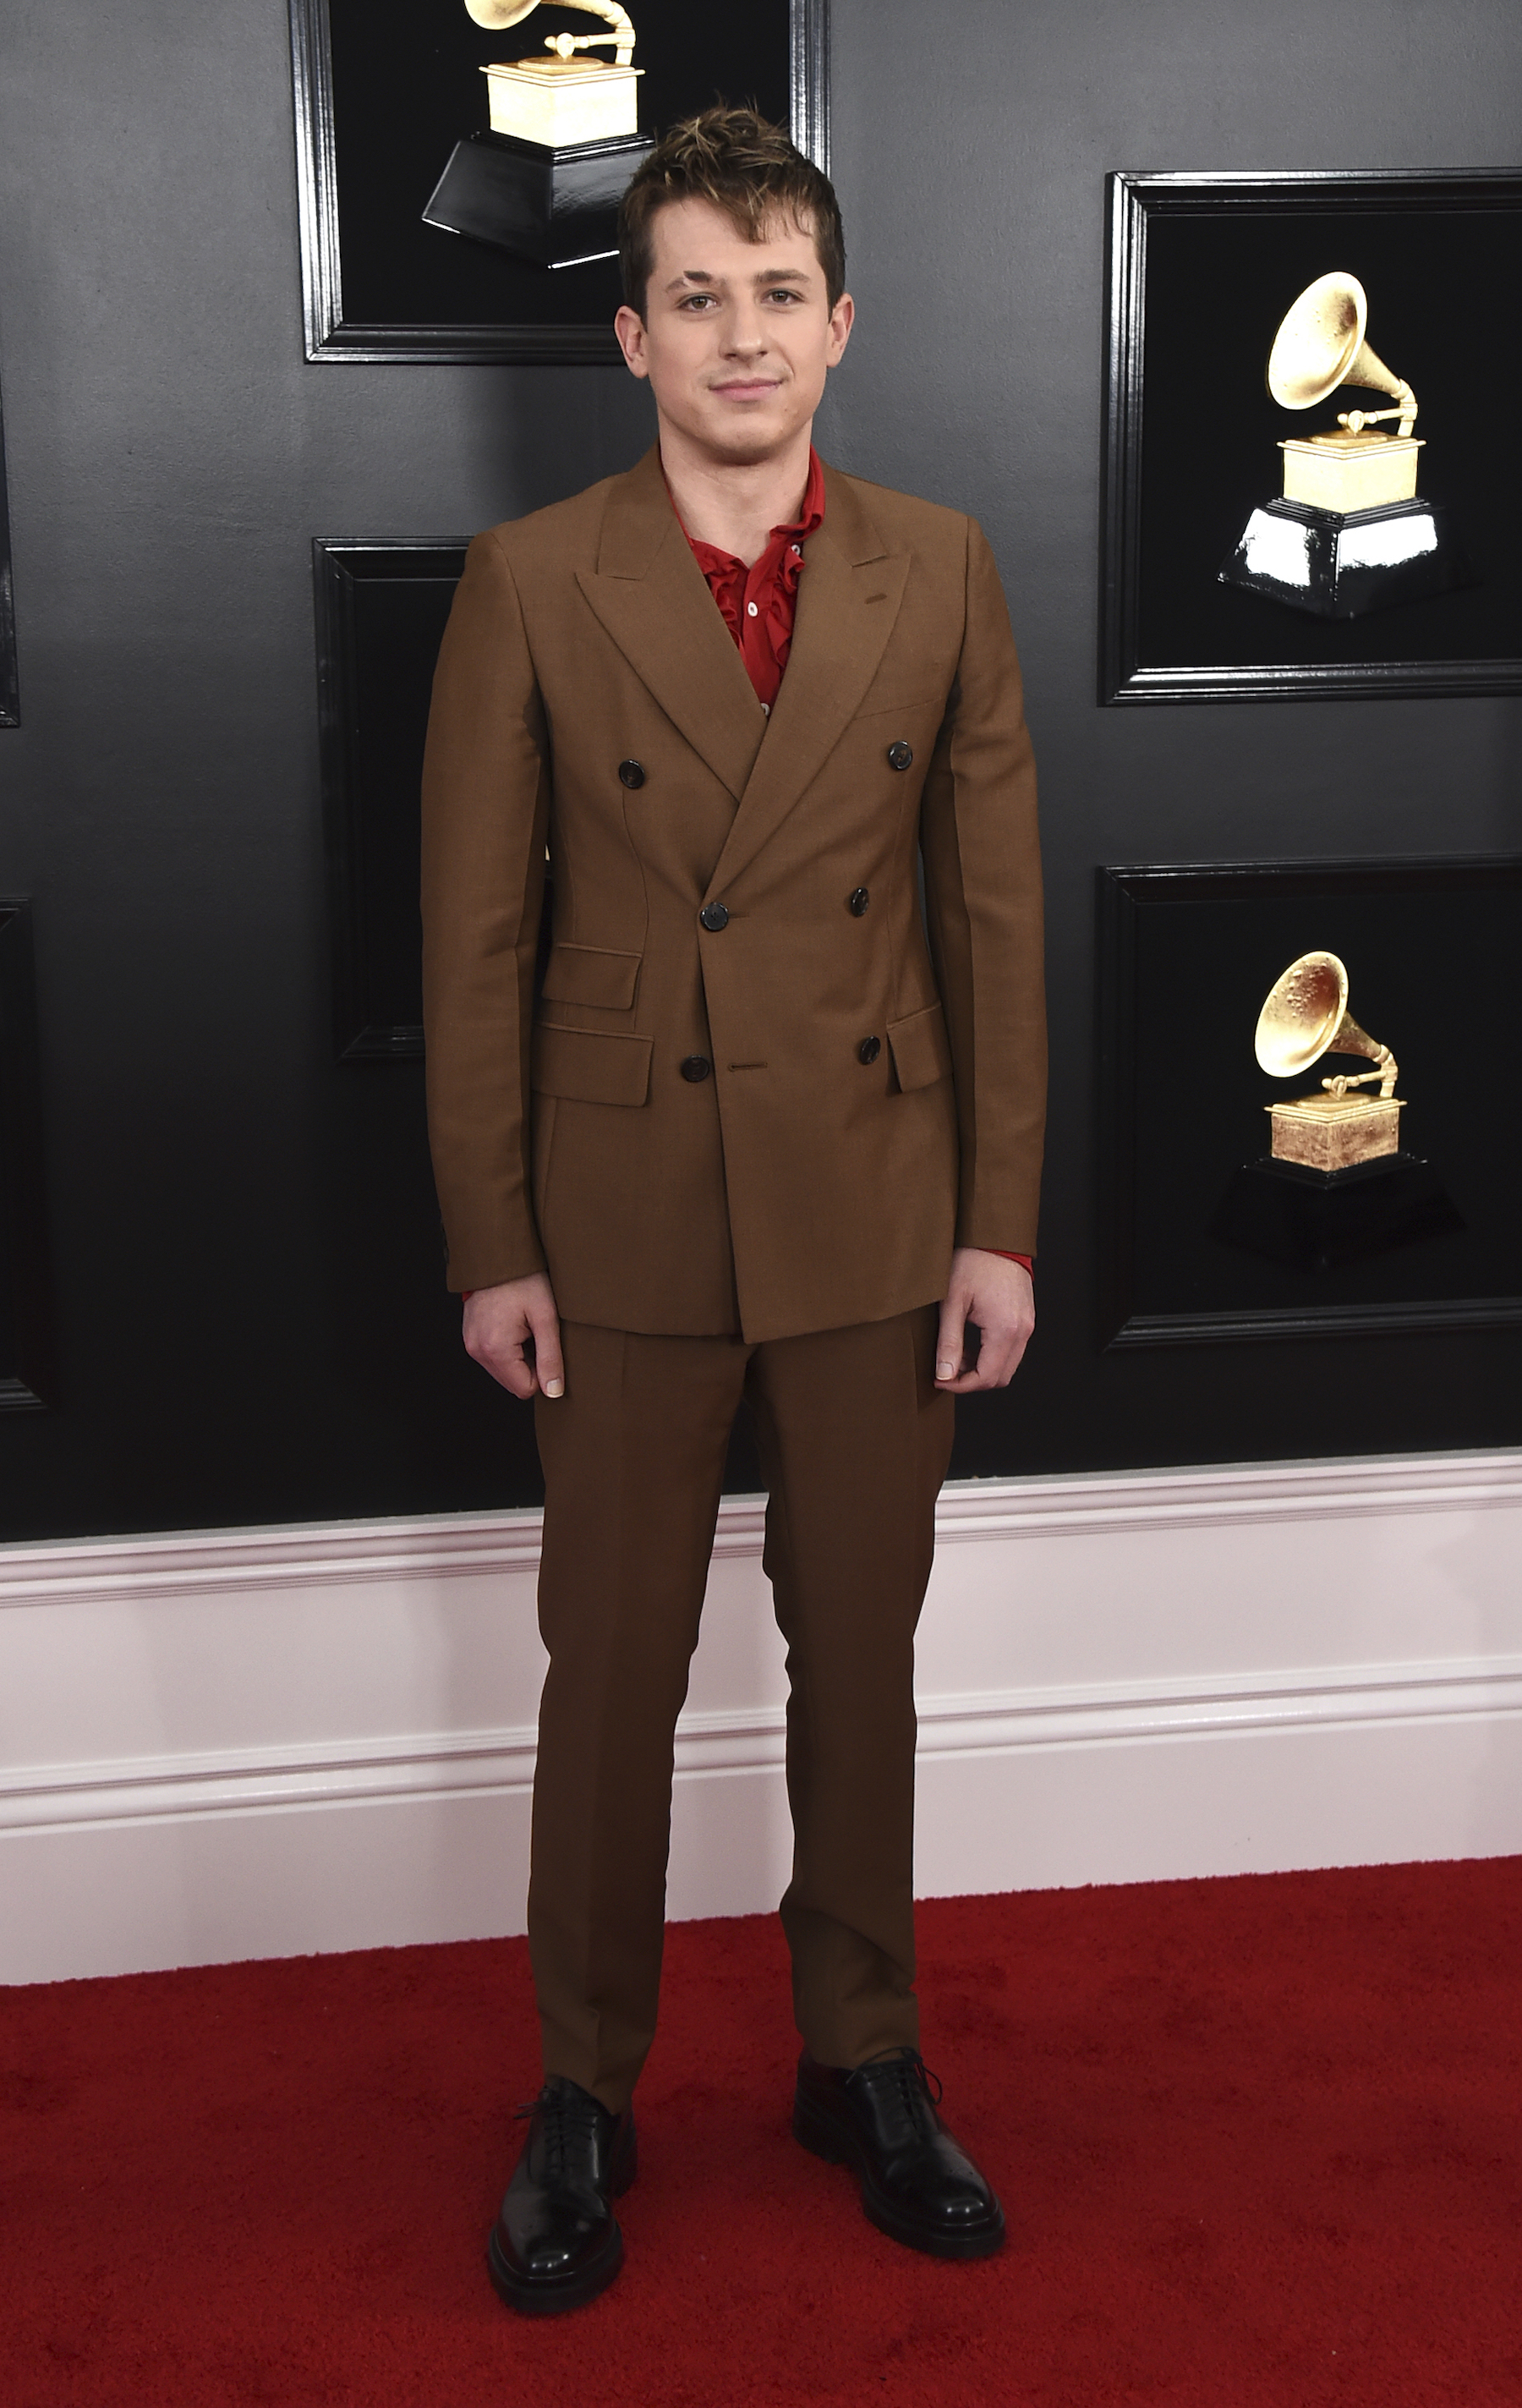 "<div class=""meta image-caption""><div class=""origin-logo origin-image ap""><span>AP</span></div><span class=""caption-text"">Charlie Puth arrives at the 61st annual Grammy Awards at the Staples Center on Sunday, Feb. 10, 2019, in Los Angeles. (Jordan Strauss/Invision/AP)</span></div>"